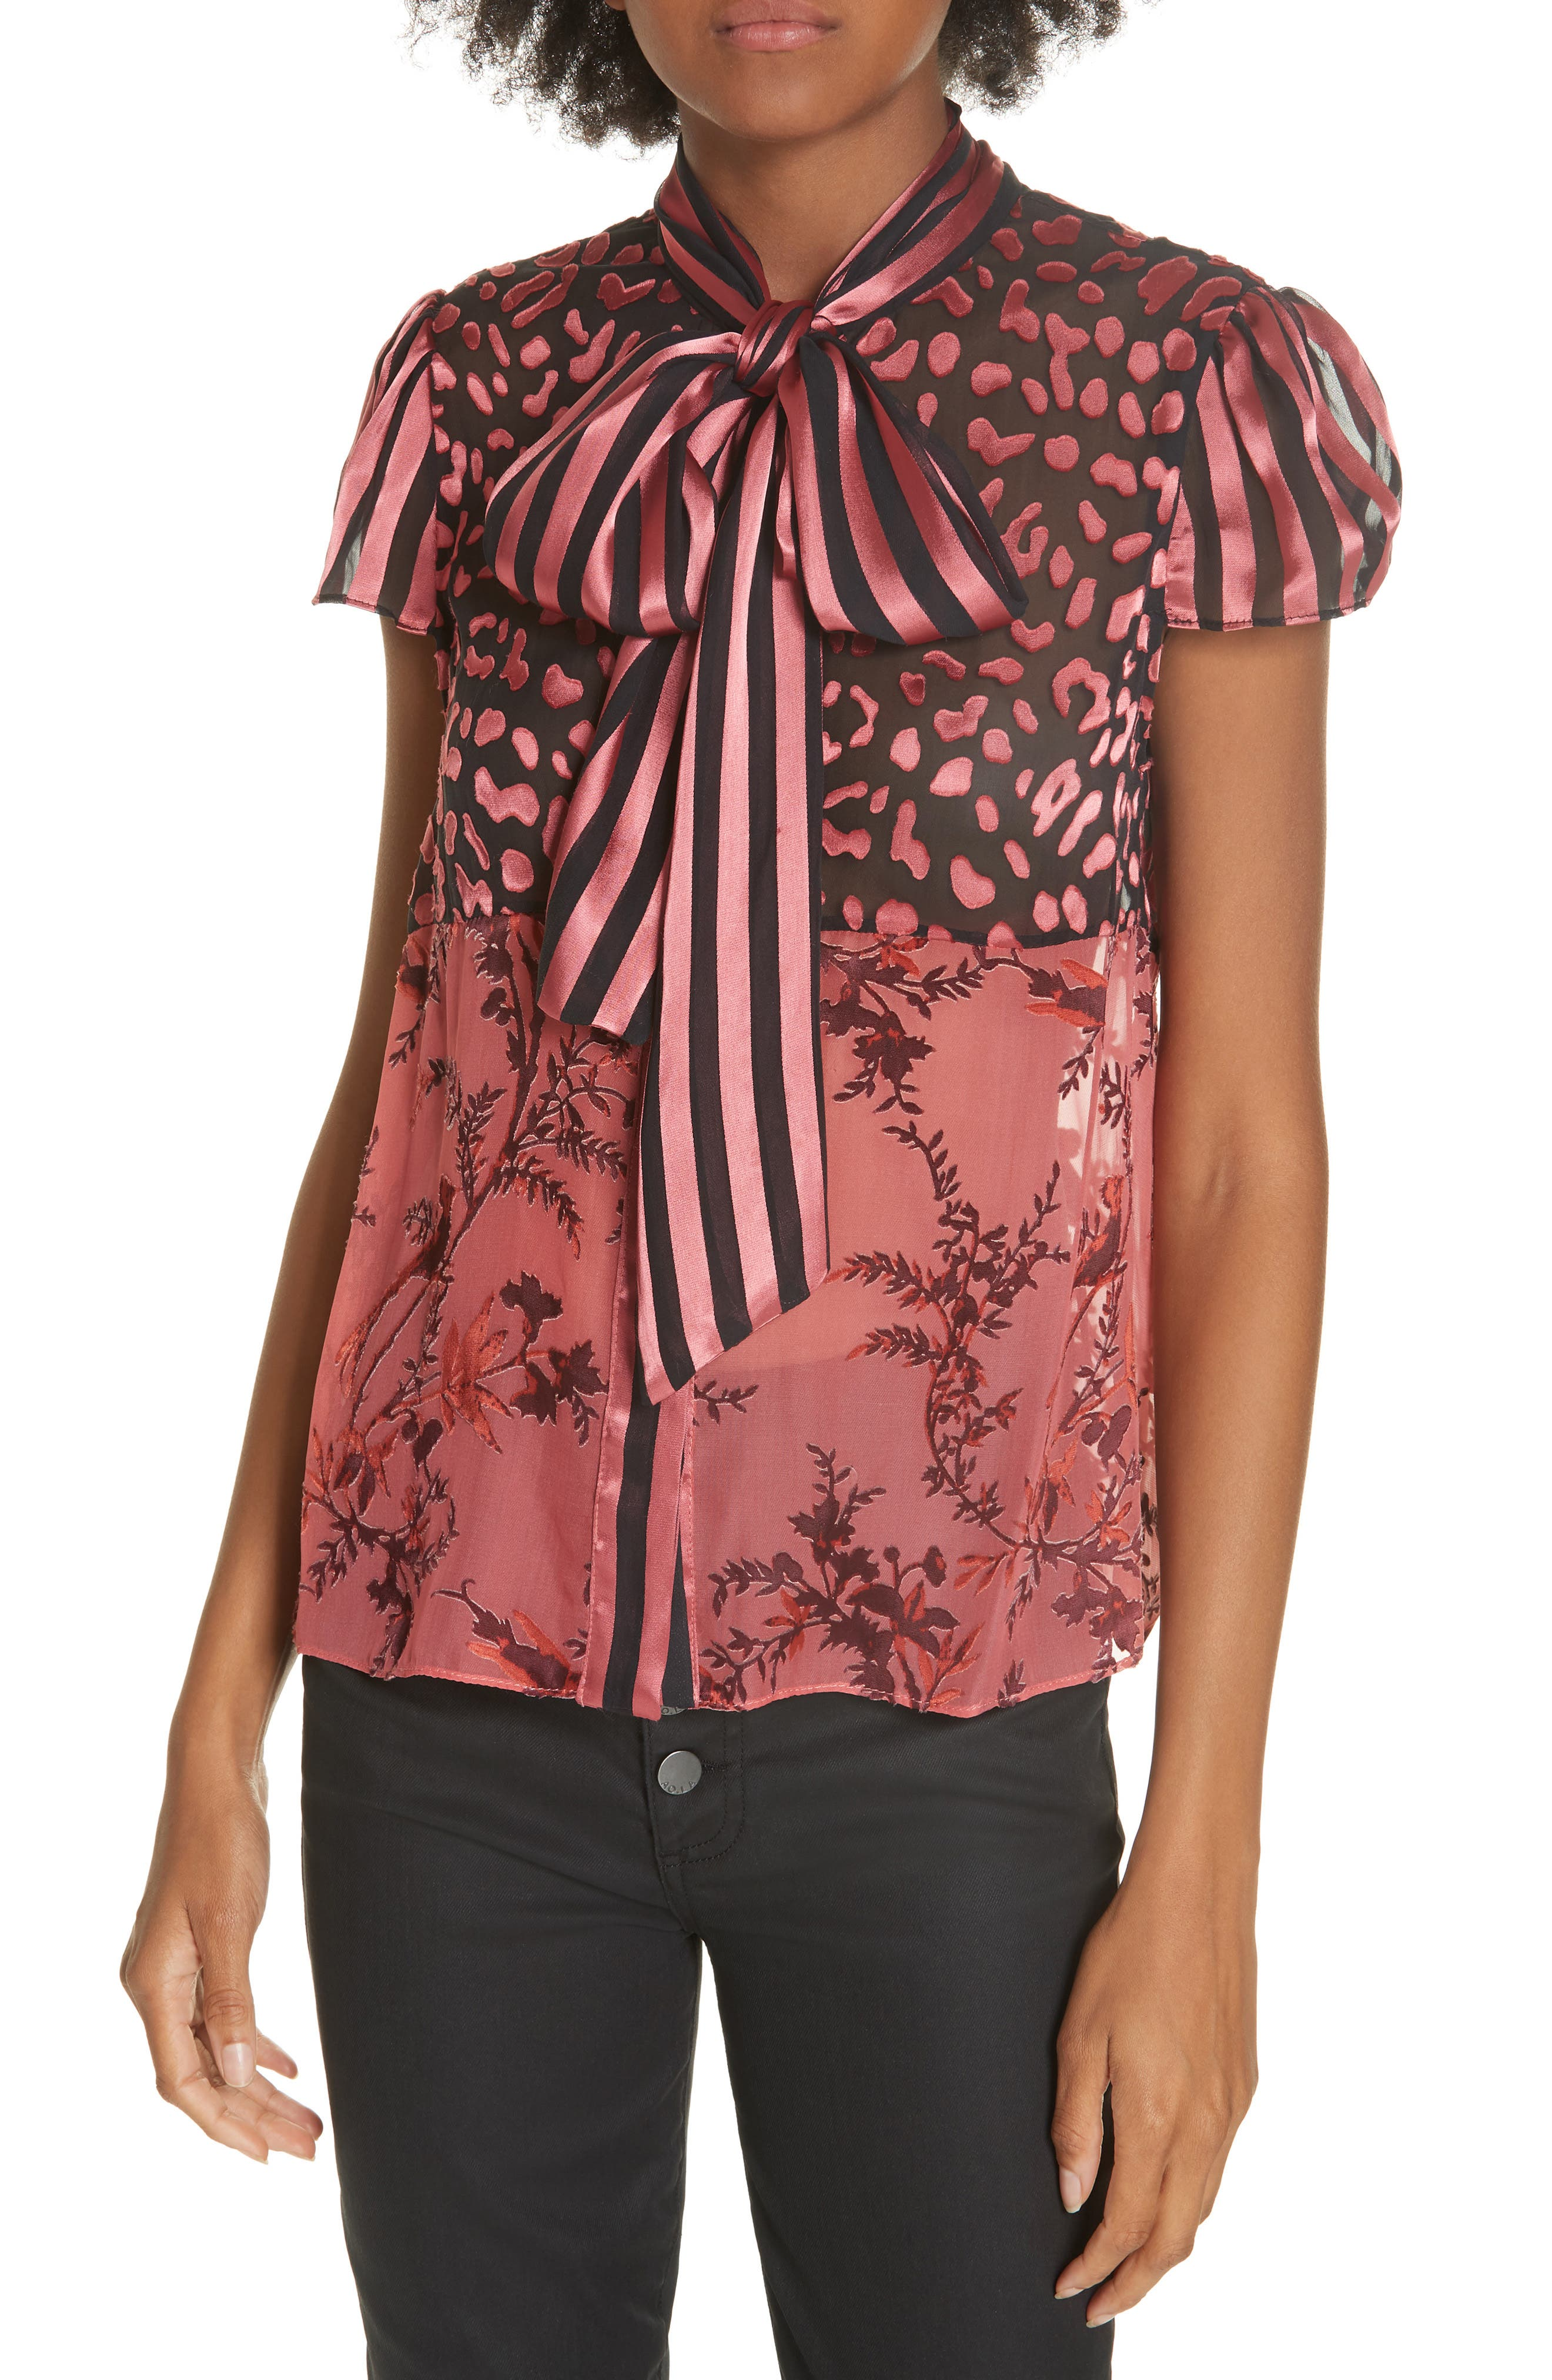 Jeannie Bow Neck Blouse,                             Main thumbnail 1, color,                             TWO TONE BIRD/ ROSE